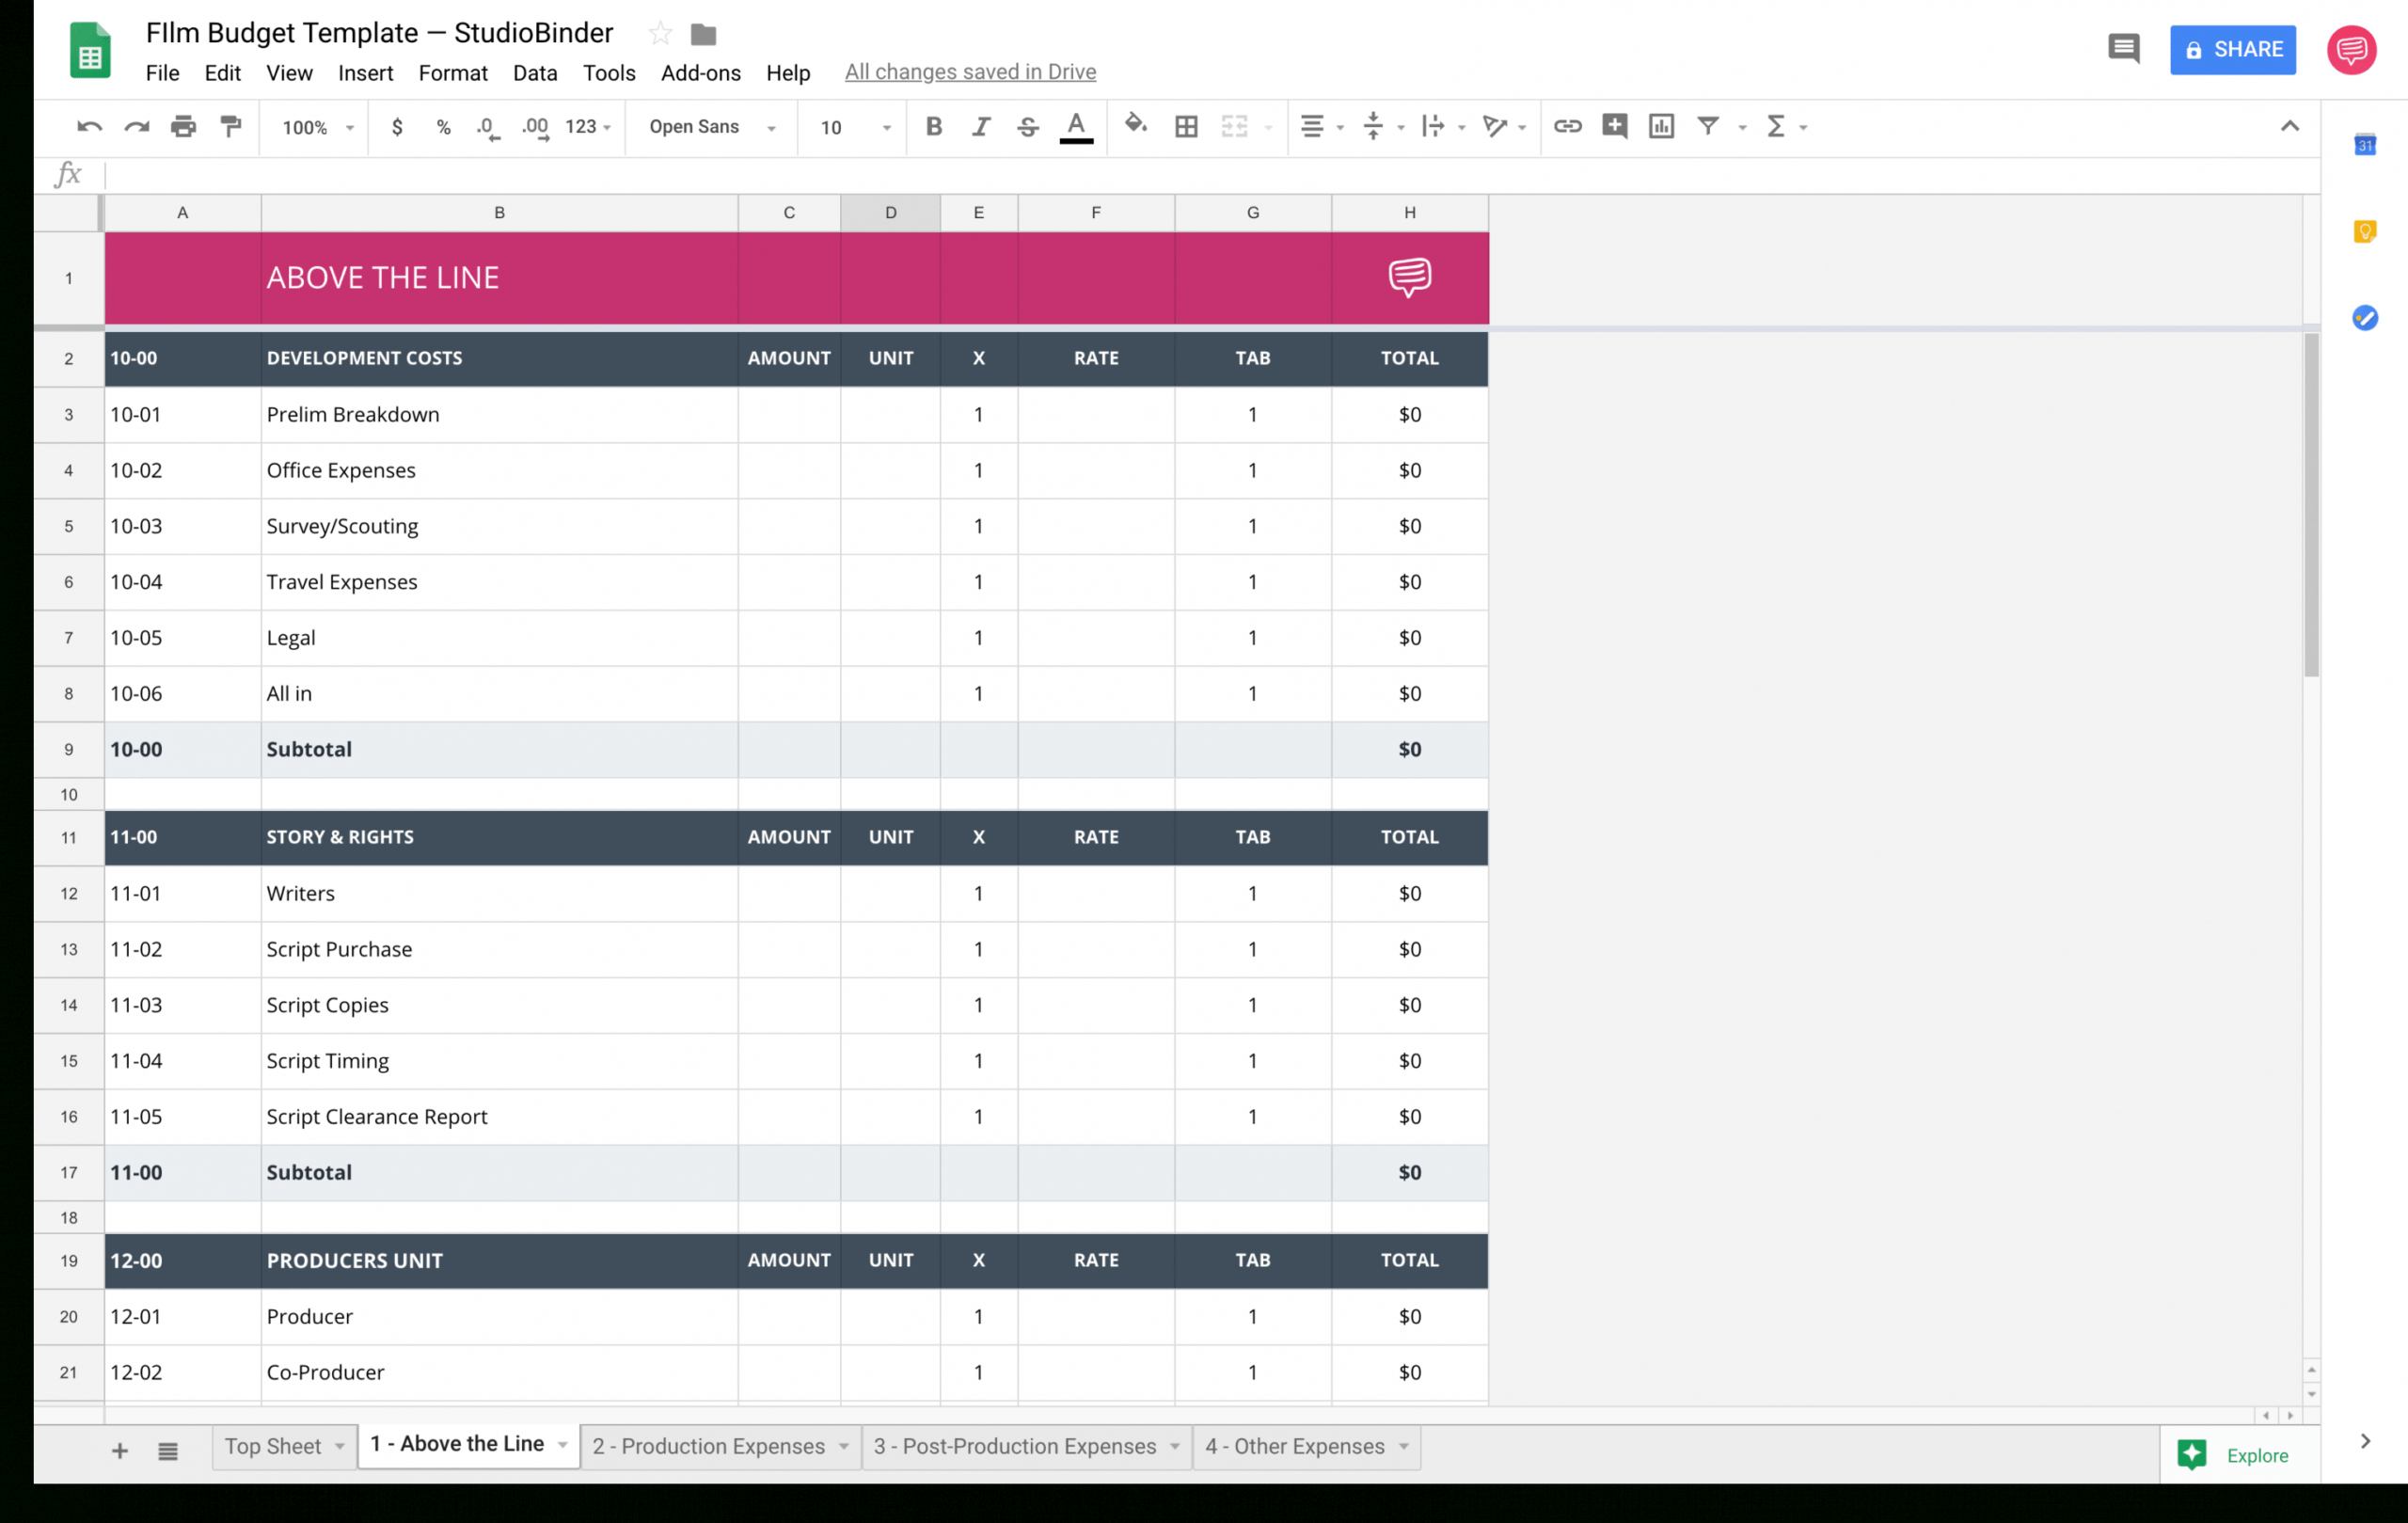 printable download your free film budget template for film & video music video budget template excel